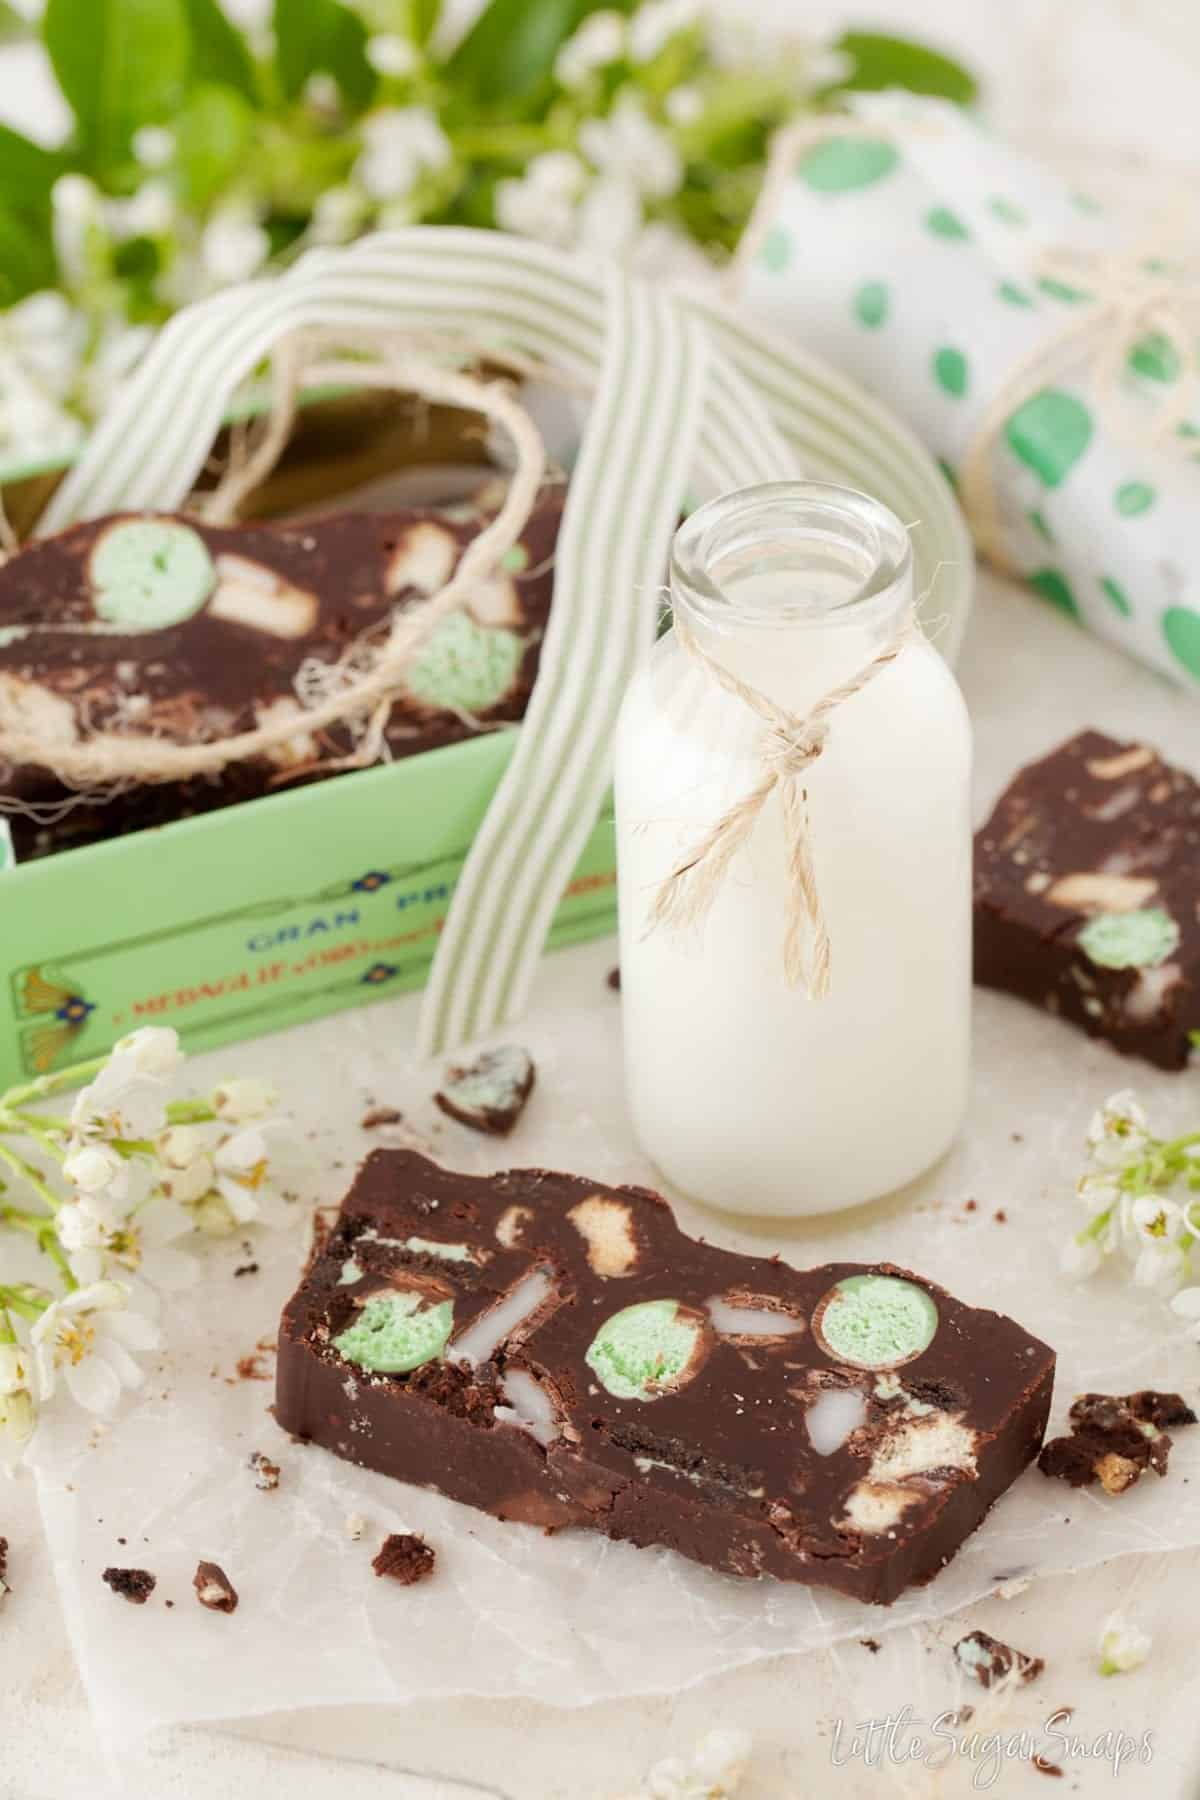 A mint aero slice with a small bottle of mint.